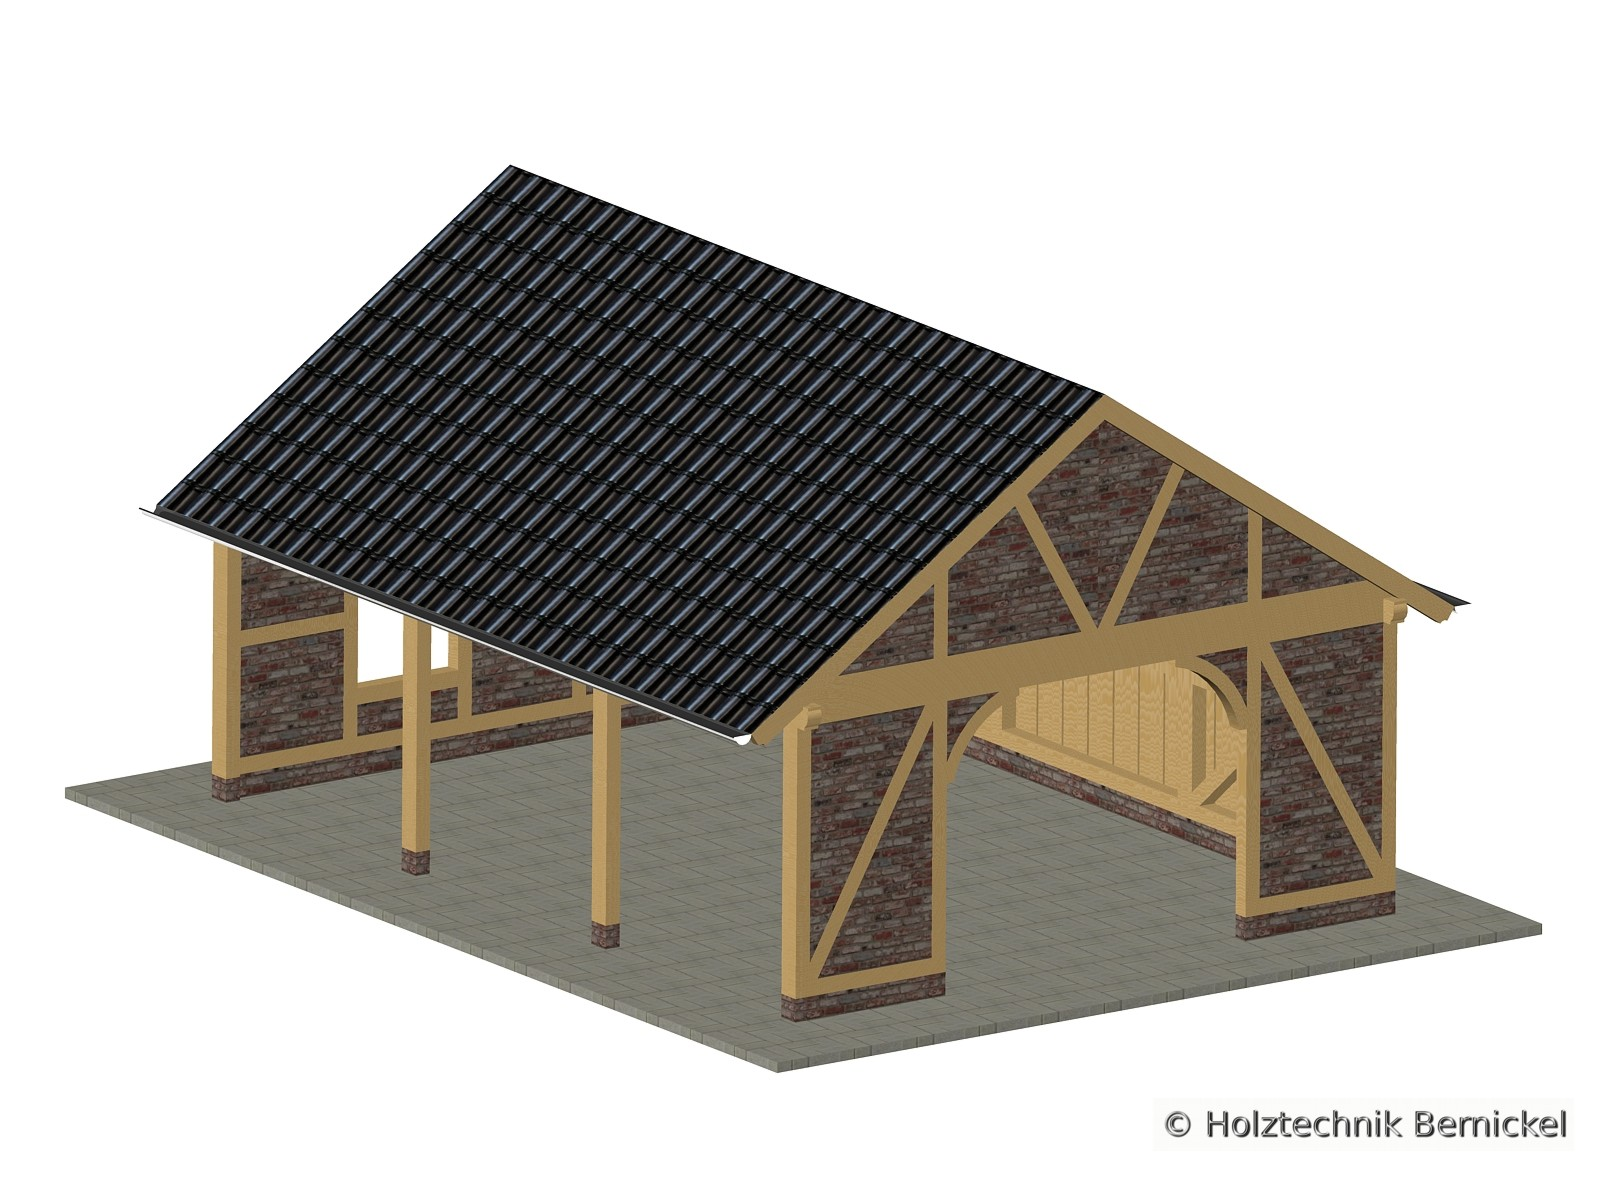 holztechnik bernickel carport holzbau holz satteldach. Black Bedroom Furniture Sets. Home Design Ideas